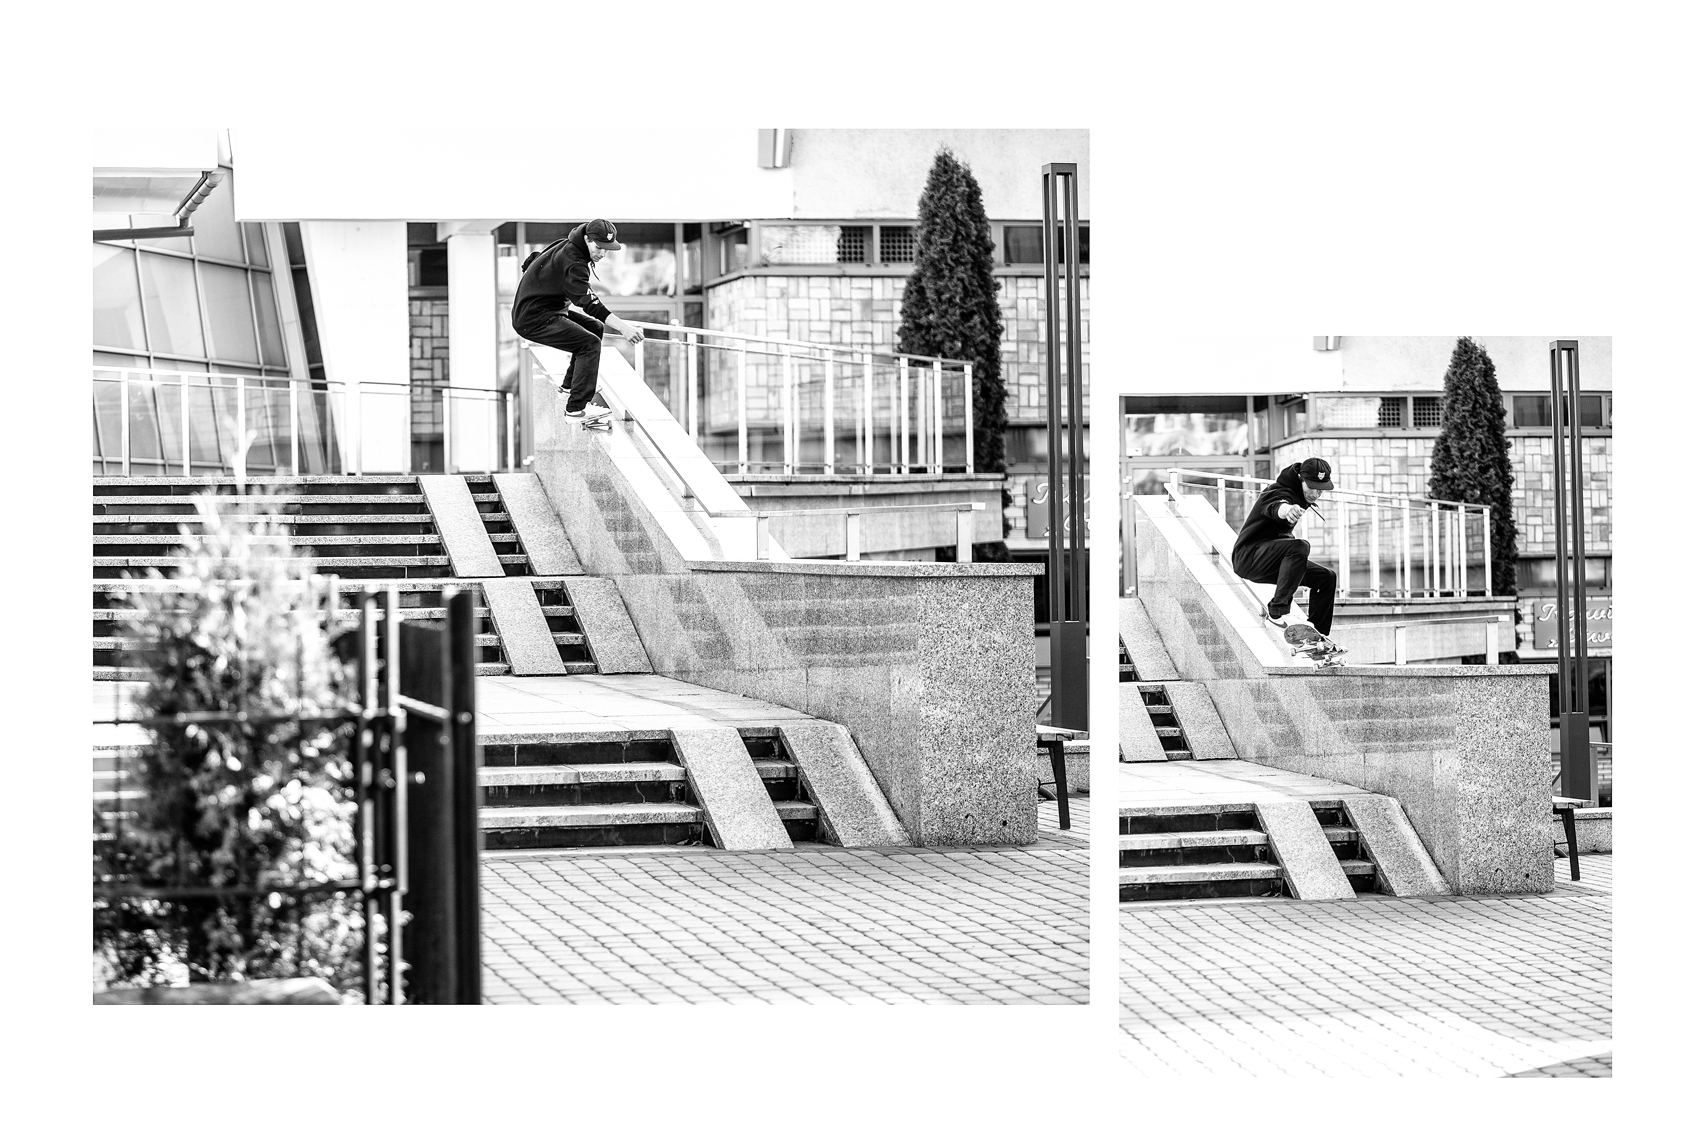 fs fifty pop in to the bank / Warsaw